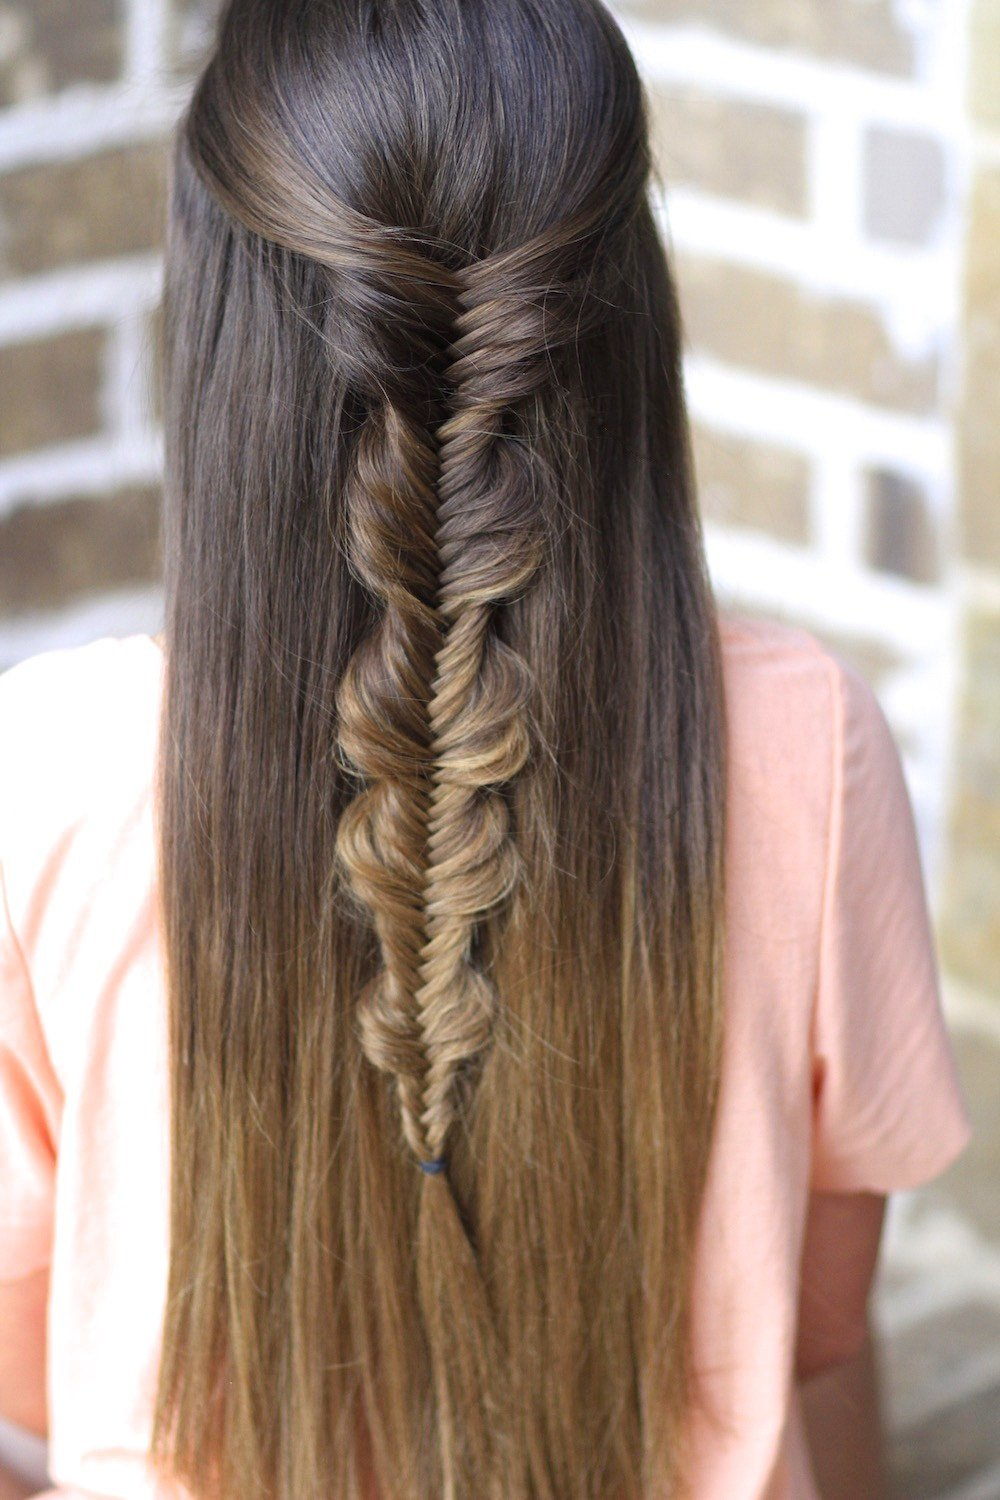 The Best The No Band Bubble Fishtail Braid Cute Girls Hairstyles Pictures